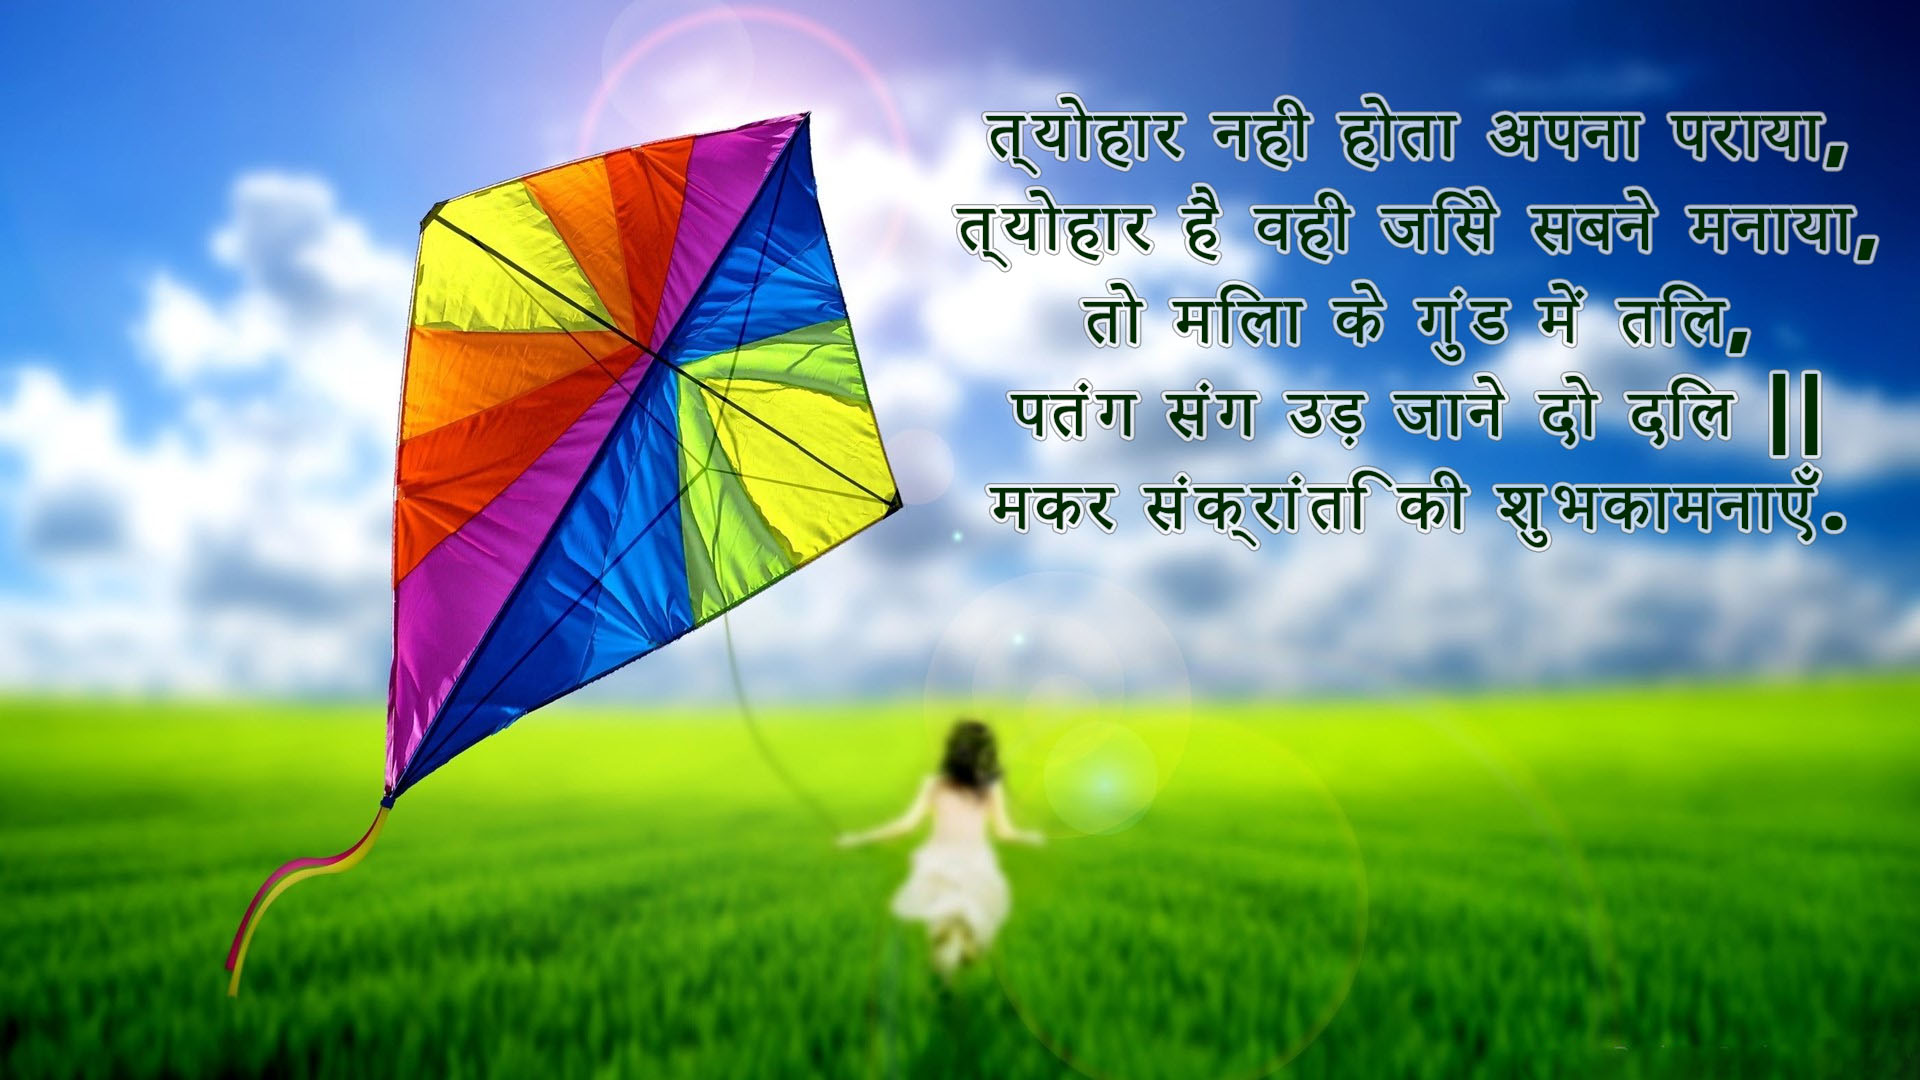 Happy Makar Sankranti Card Images Wallpaper Free Download